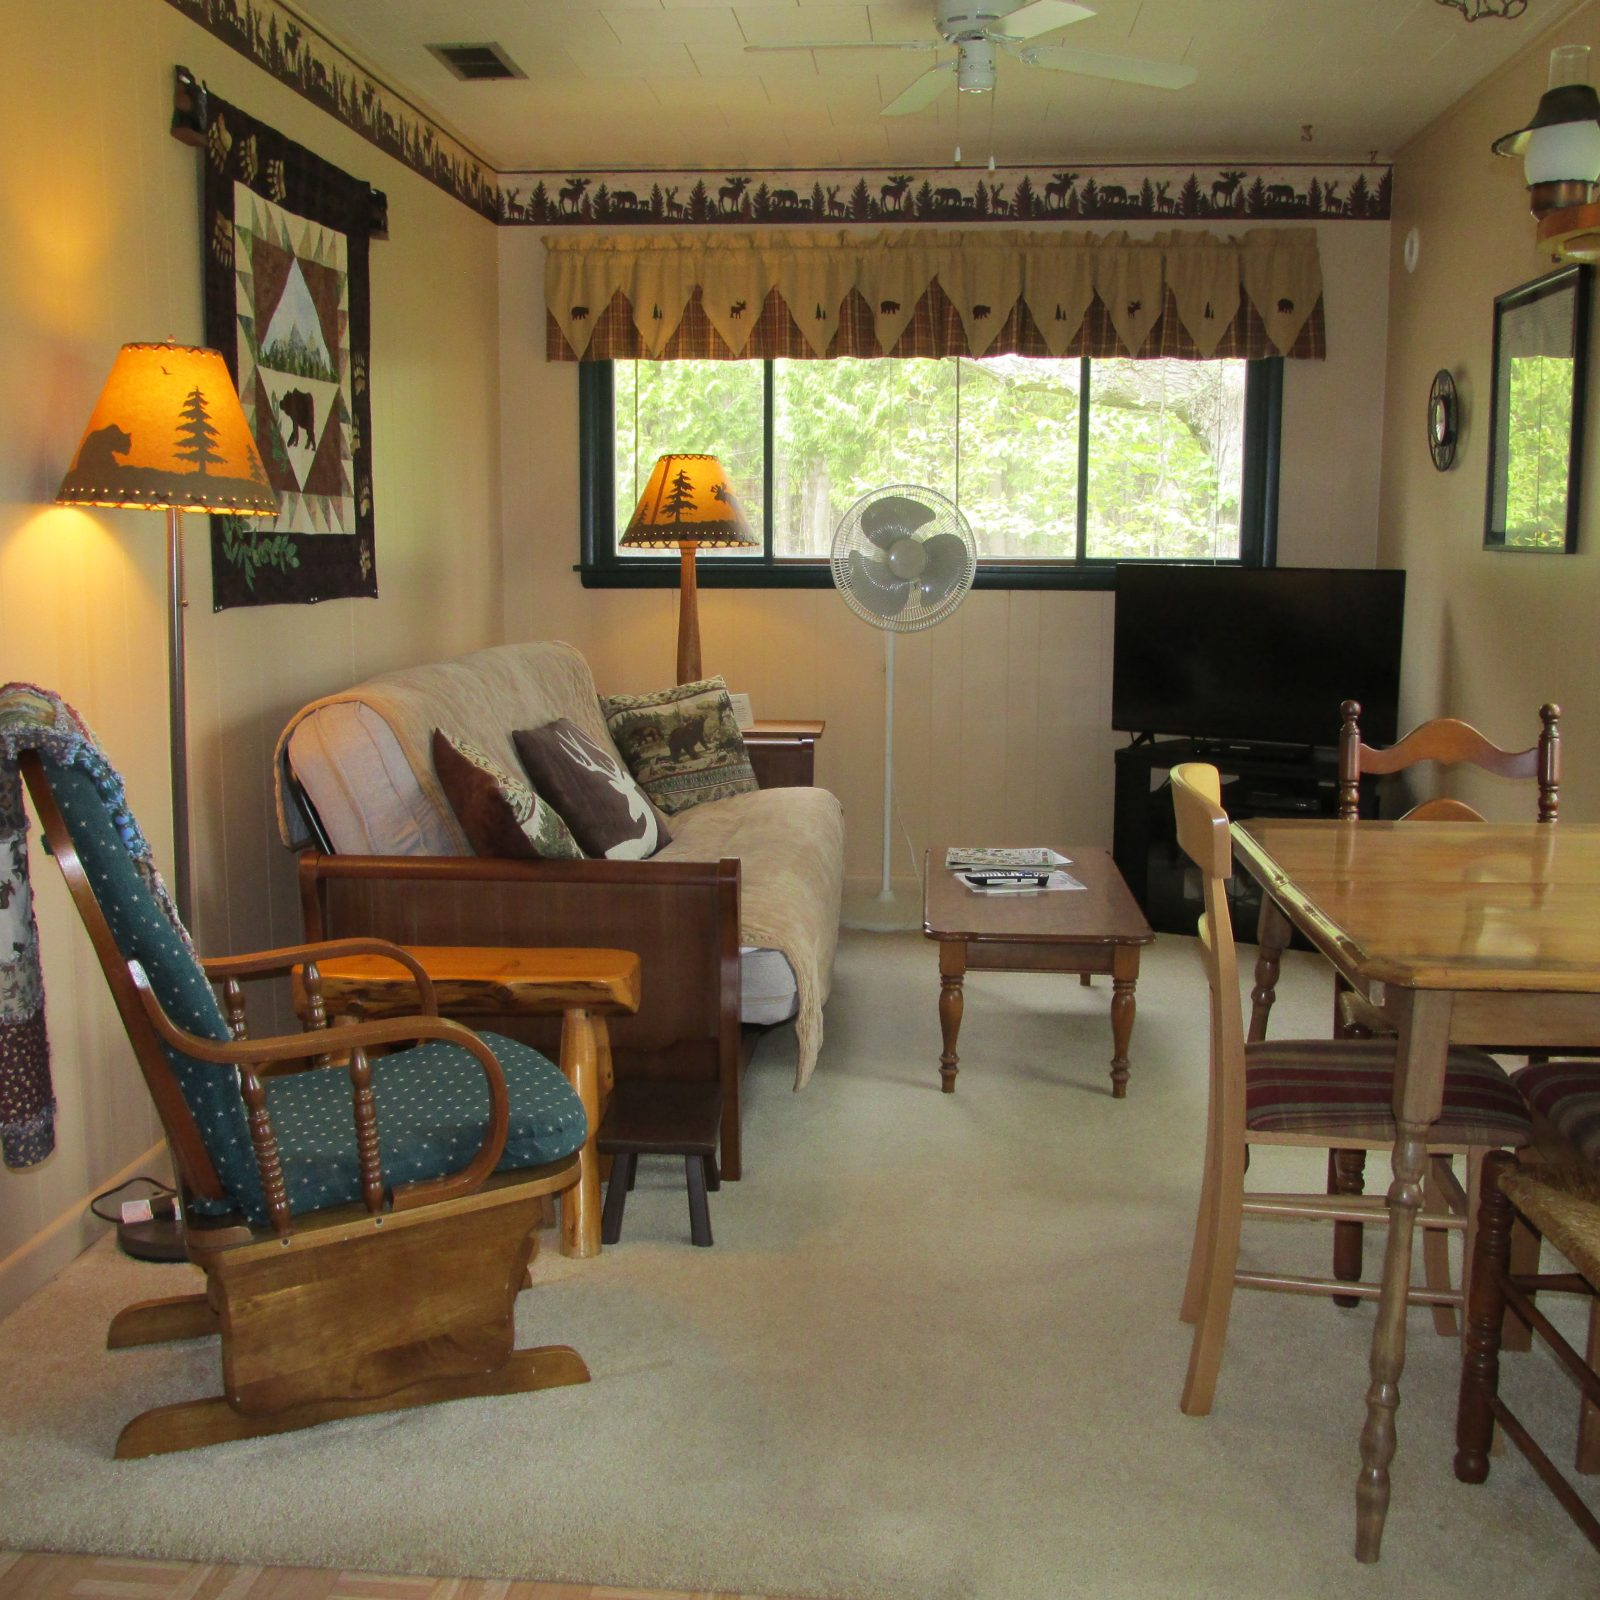 Rooms For Rent Bay Area: Sister Bay Duplex Cottages In Door County For That